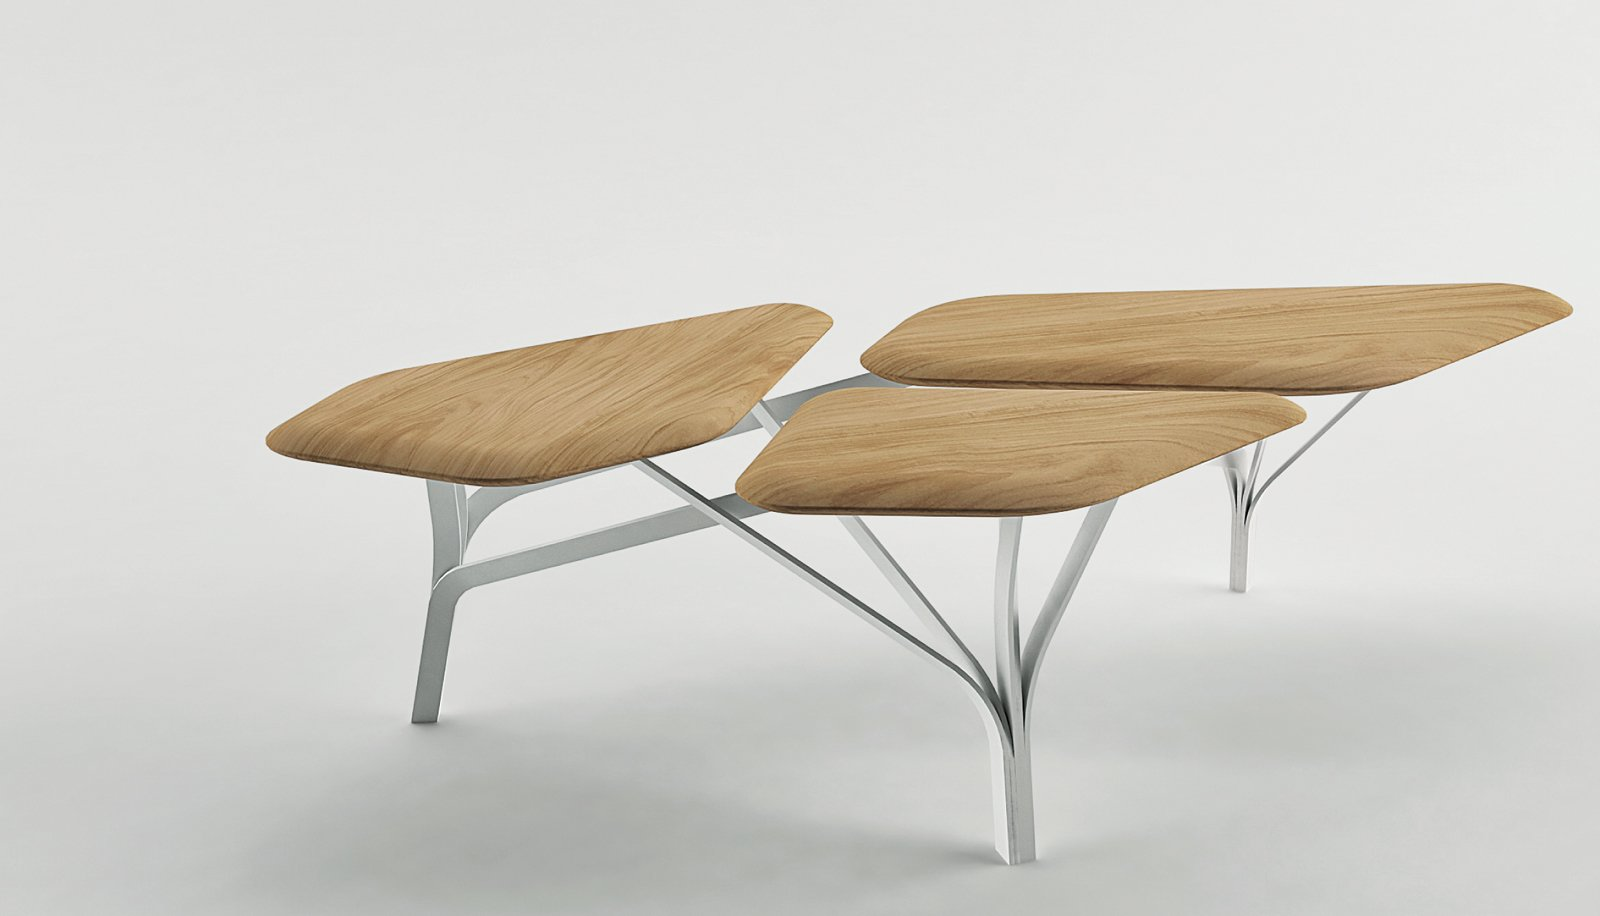 Noé Duchaufour-Lawrance's Borghese coffee table has an abstract form that references pine trees in the Villa Borghese park in Rome.  Photo 4 of 10 in Furniture Designer Spotlight: La Chance